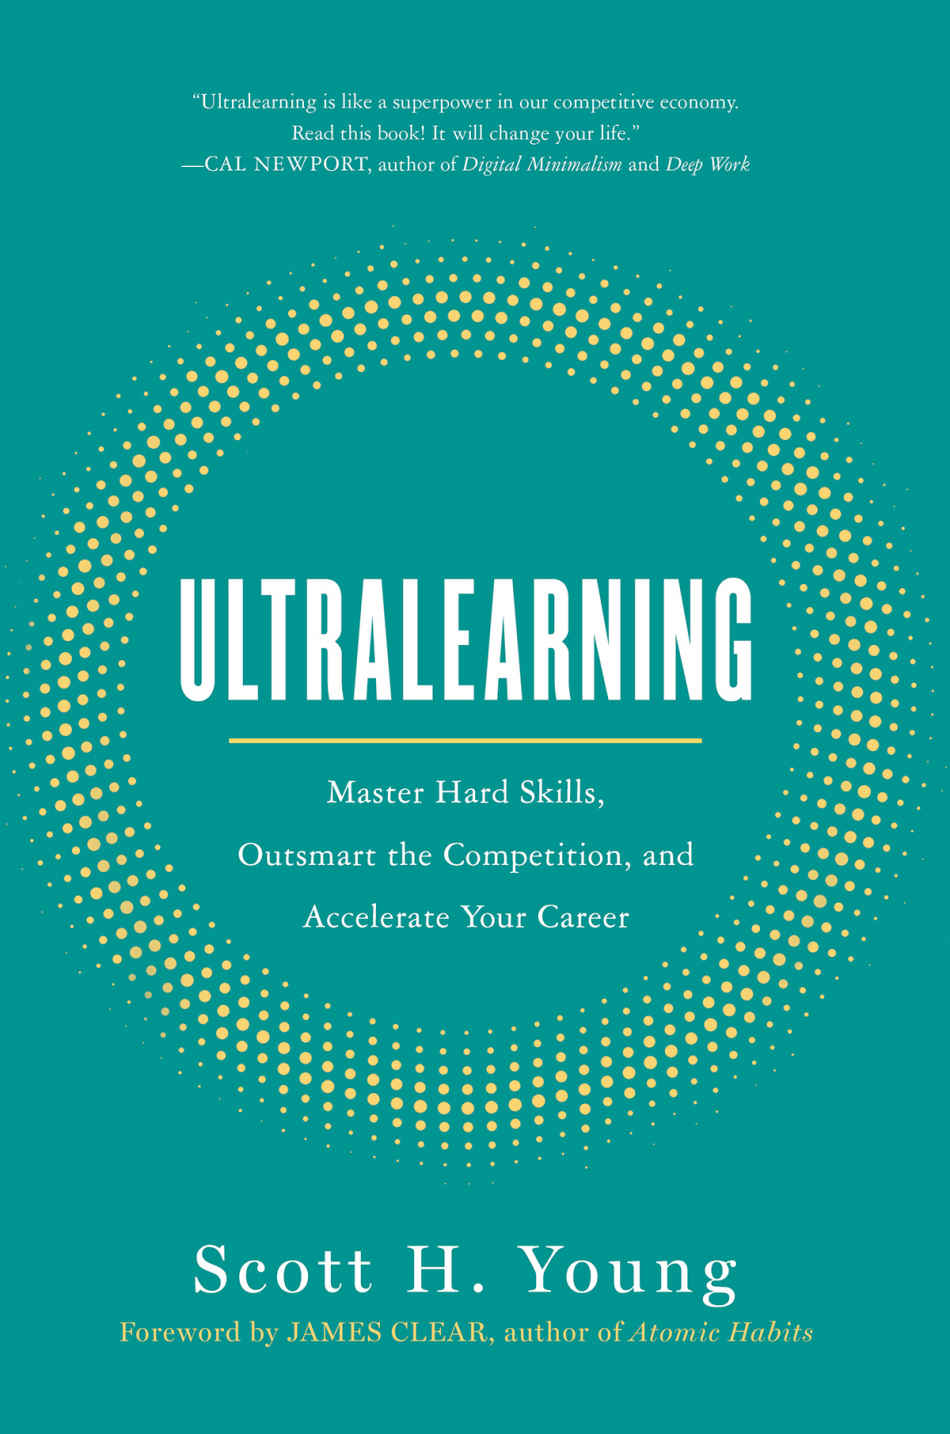 Cover photo of Ultralearning book